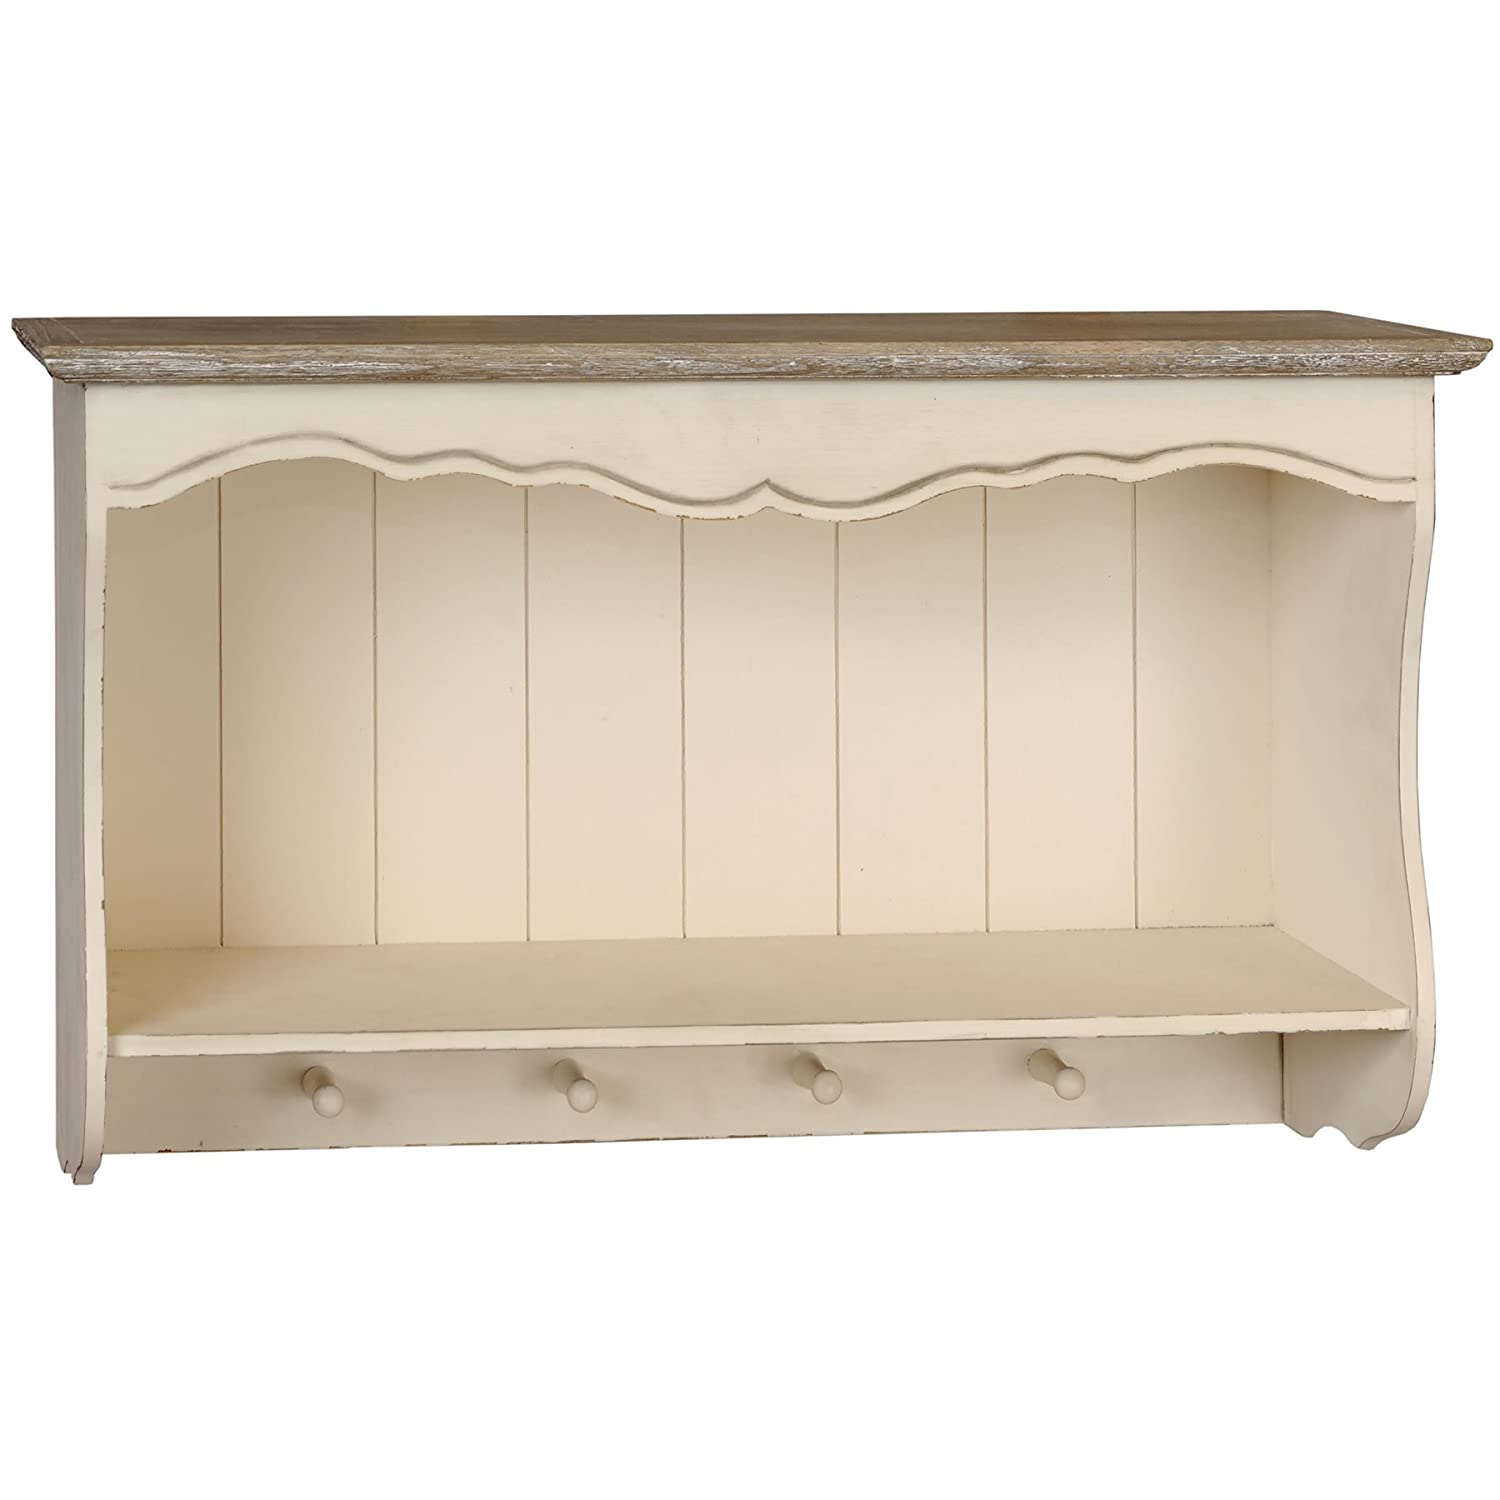 used2bee french shabby chic shelf unit with hooks amazon co uk rh amazon co uk country decor wall shelves Kitchen Wall Shelves